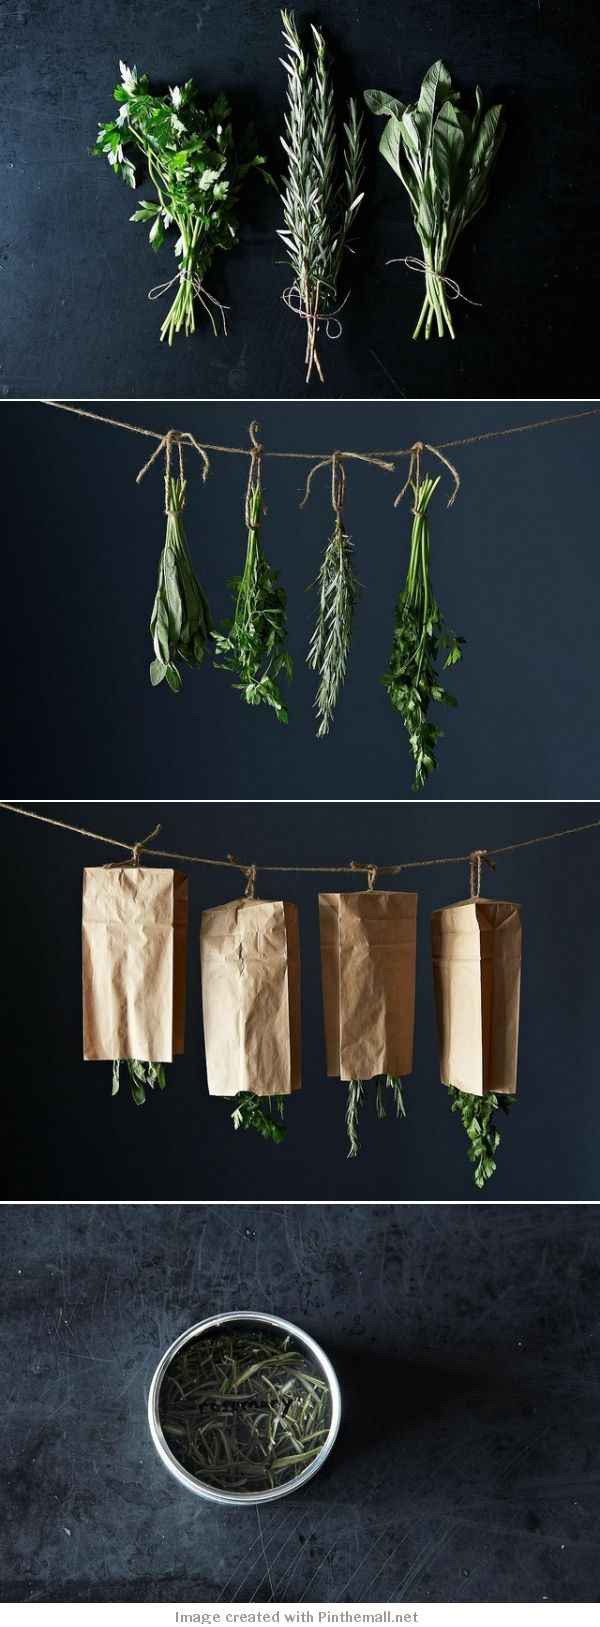 How to properly dry your herbs